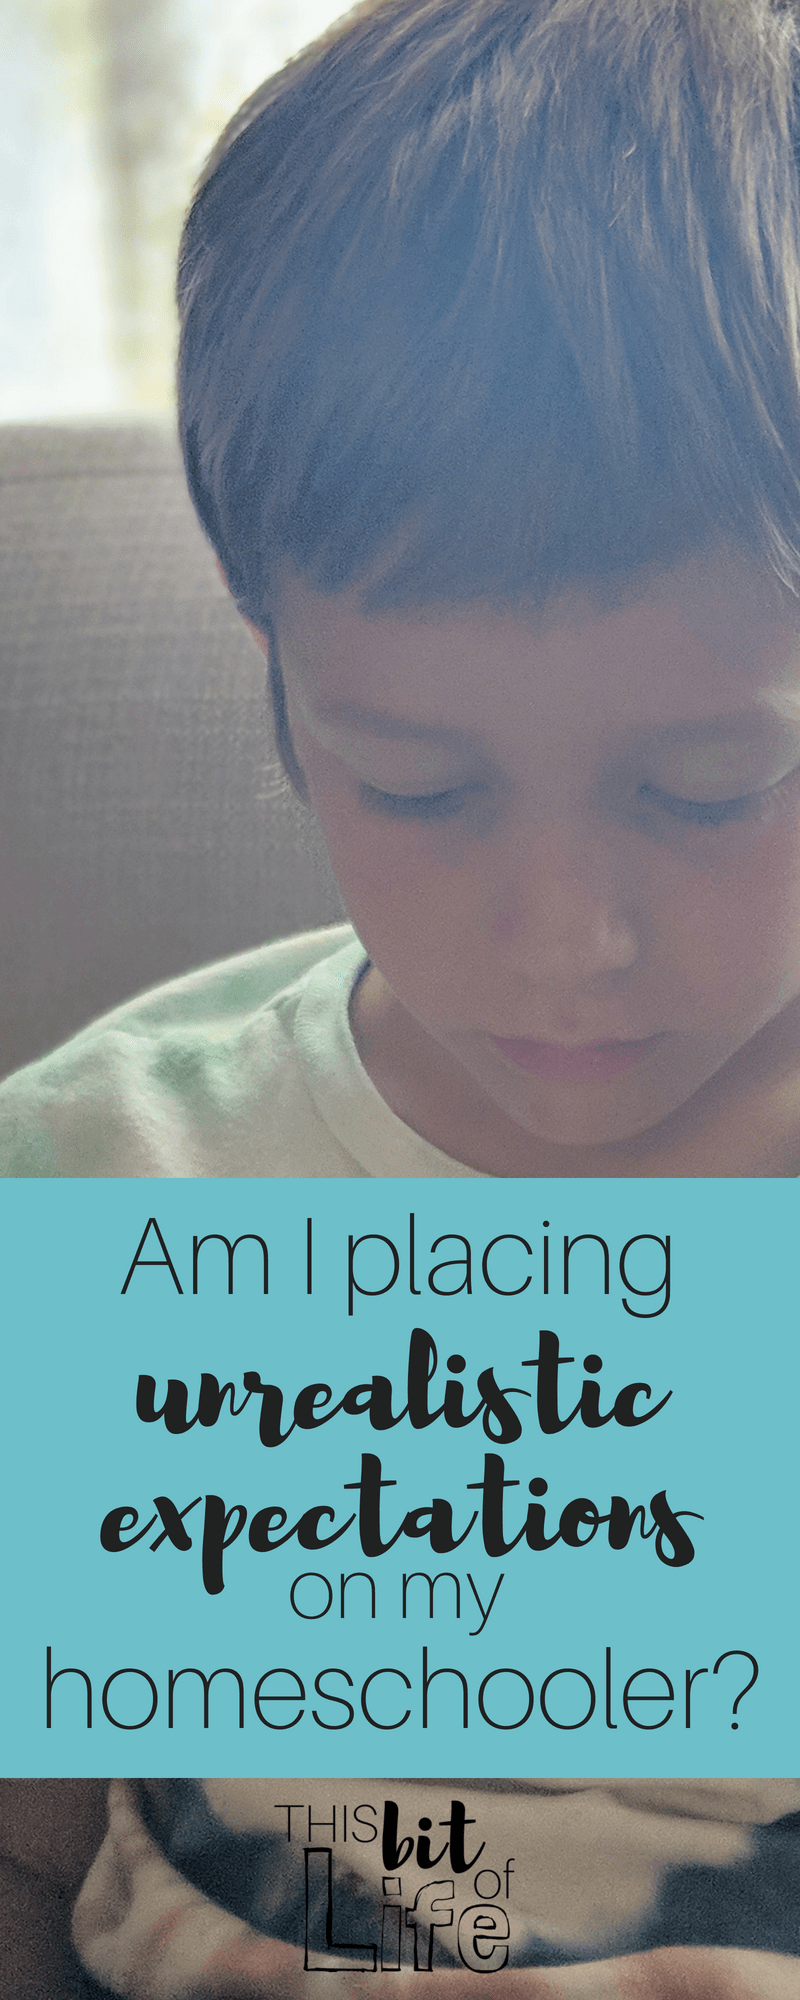 Am I setting unrealistic expectations on my homeschooler? Am I putting too much pressure on him, and keeping him from having the childhood he deserves? #homeschool #unrealisticexpectations #